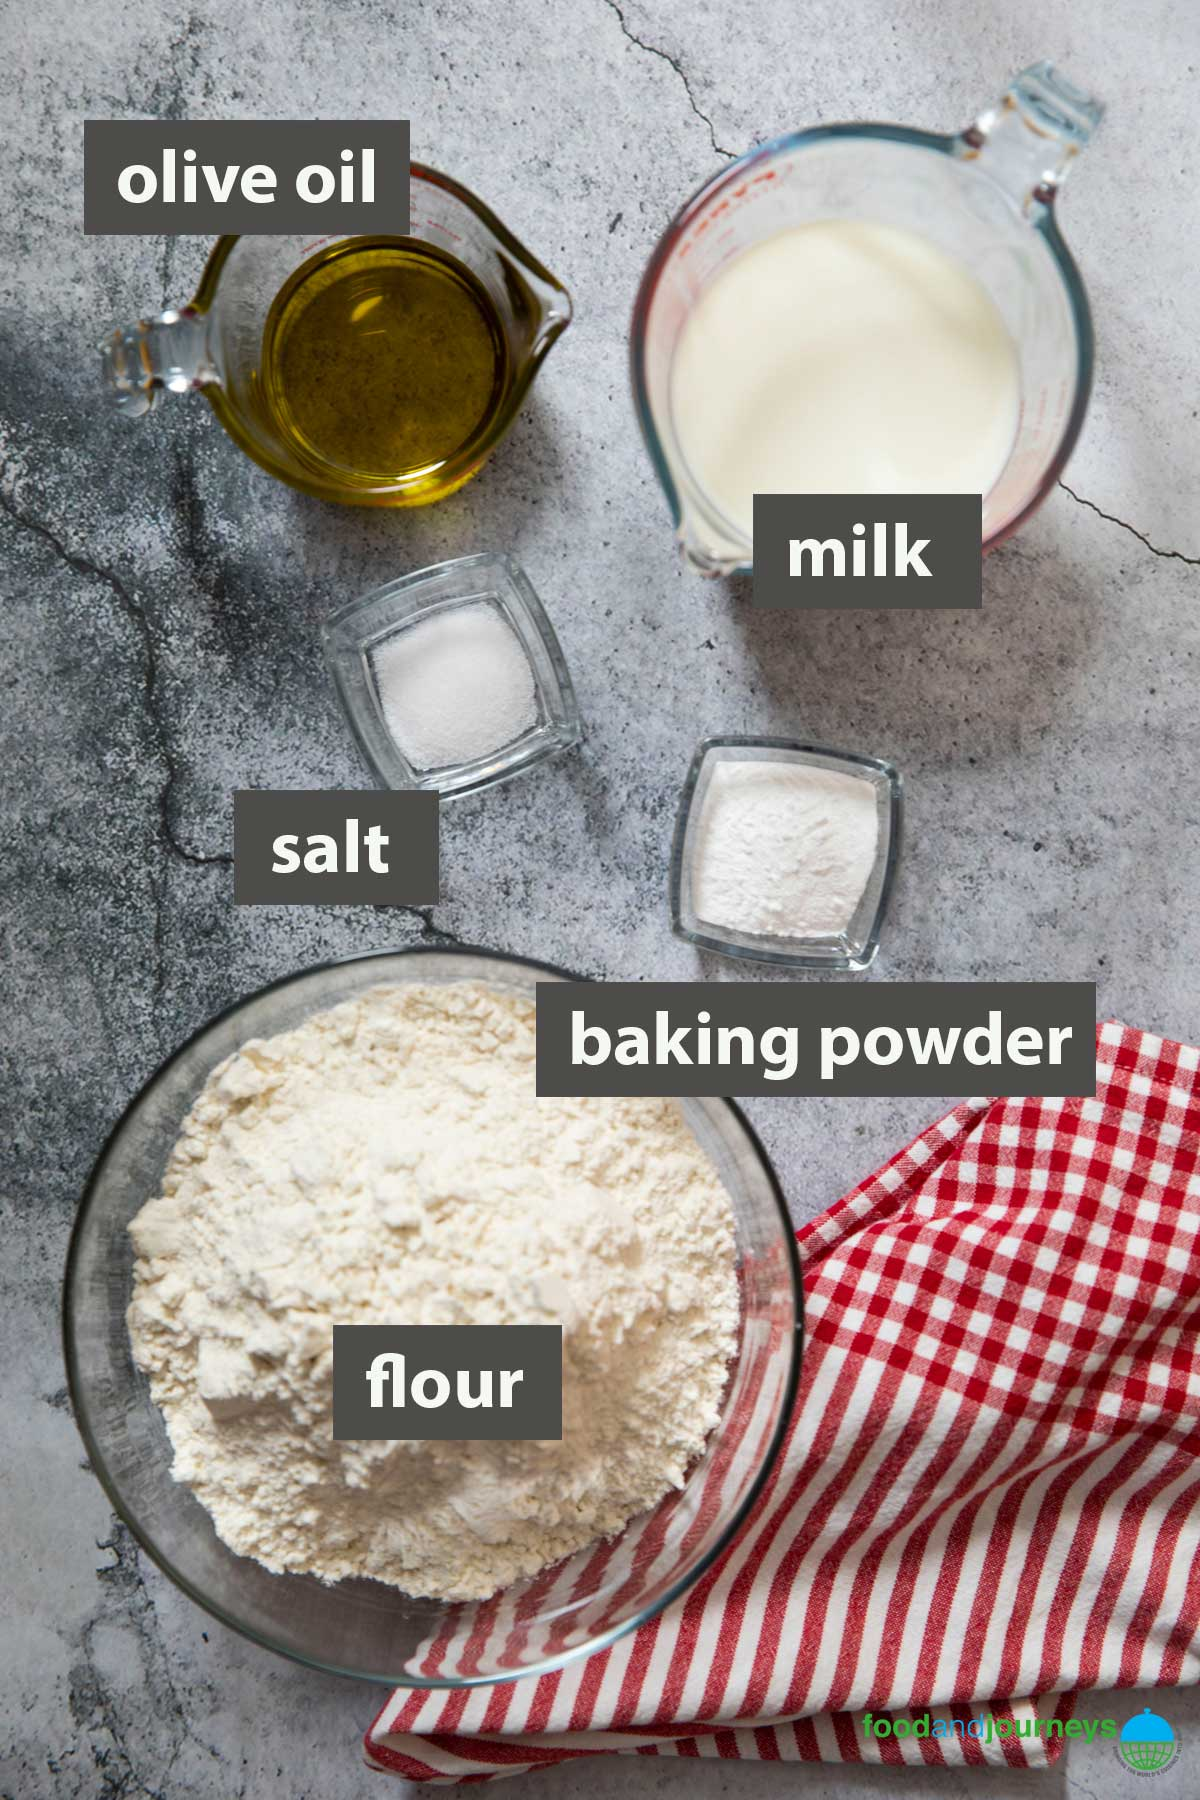 An image showing all the ingredients you need to make no-yeast flatbread at home.